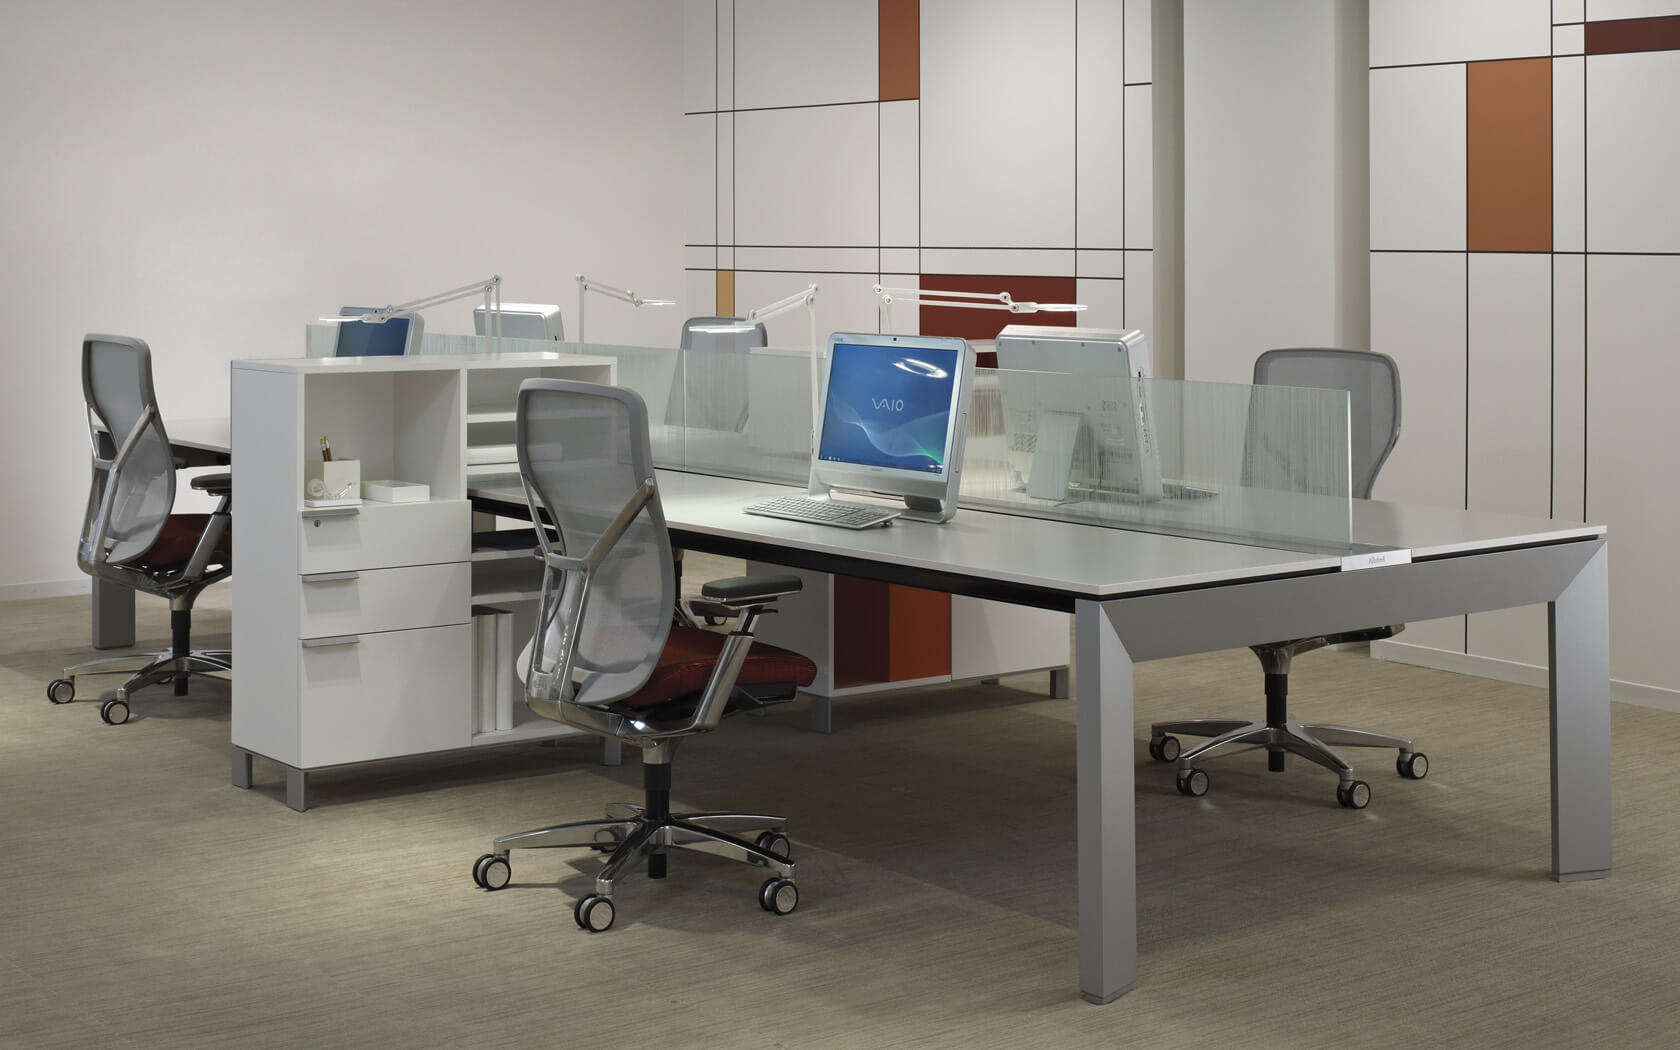 allsteel access chair sayl by herman miller stride benching mcaleer 39s office furniture